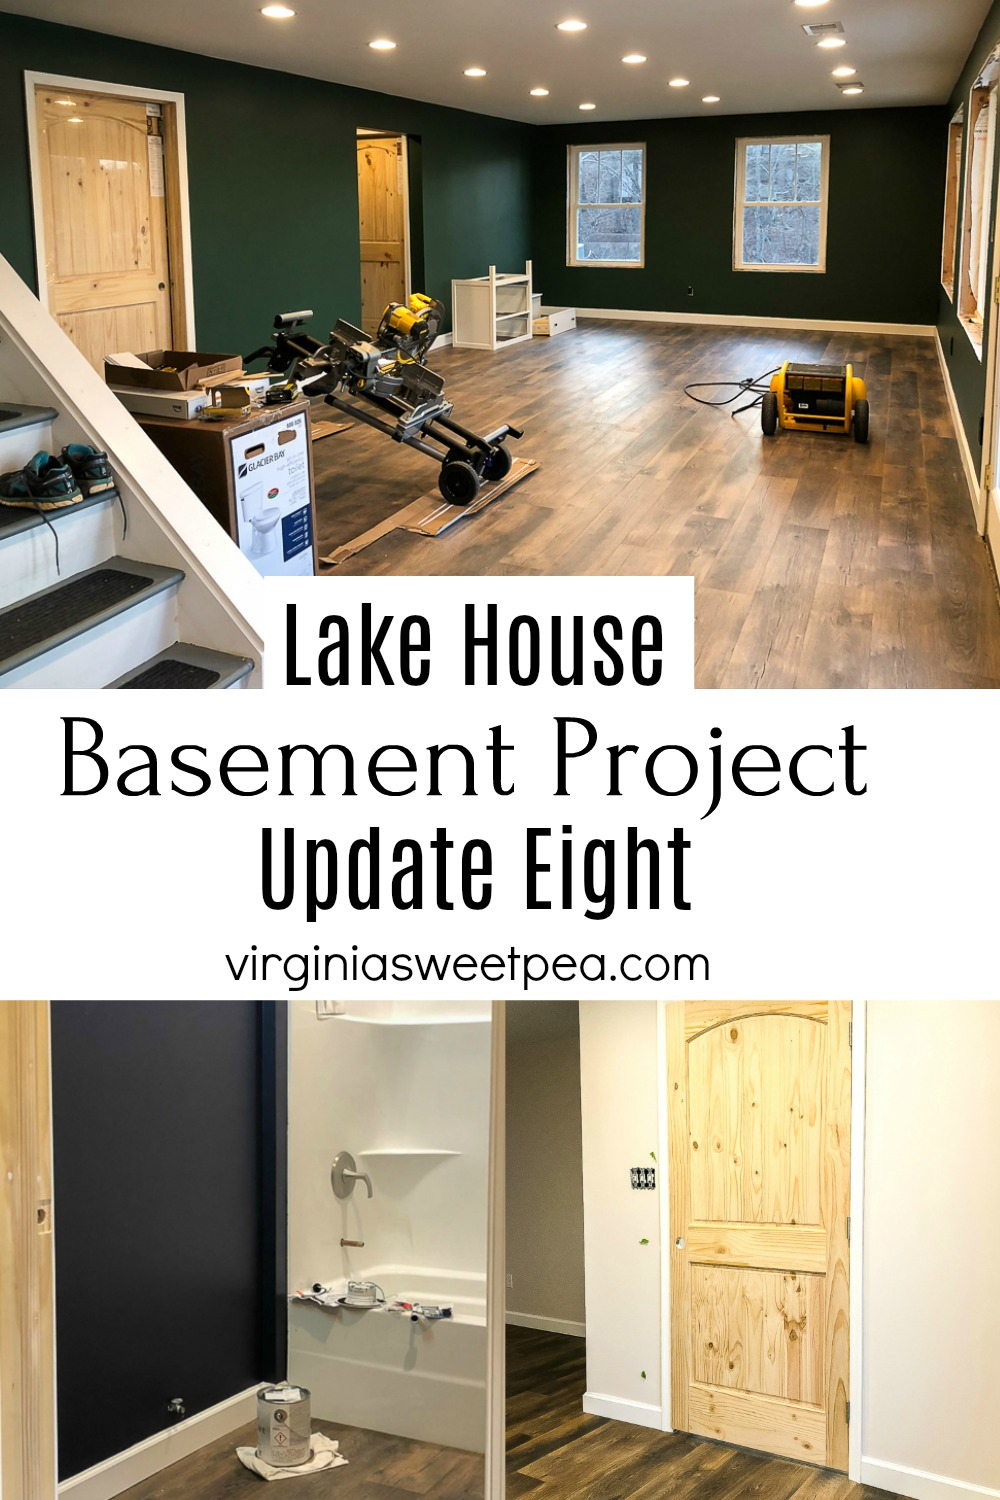 Lake House Basement Project - Work continues on the transformation of an unfinished basement into a family room, bathroom, and bedroom. #lakehousebasement #basementproject #finishingabasement via @spaula